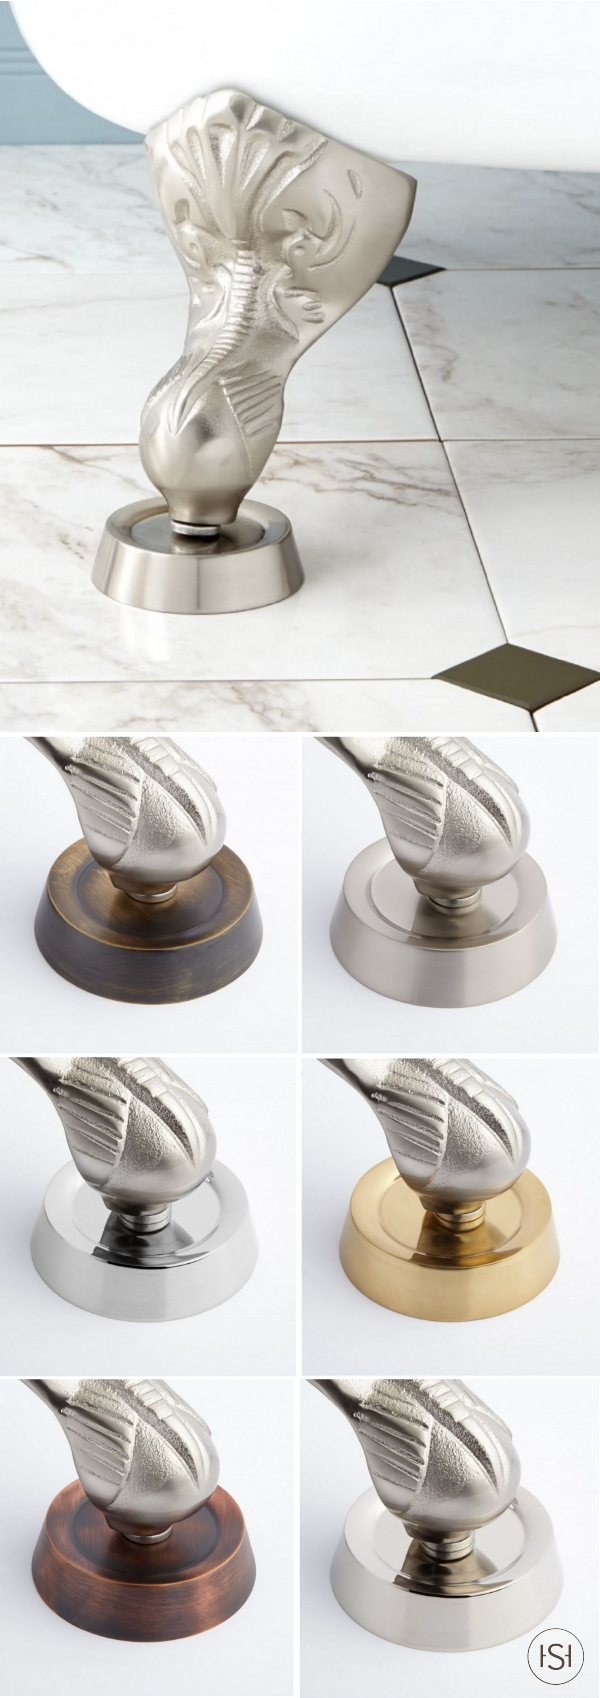 Solid Brass Coasters for Tub Feet - Set of 4 | Pinterest | Solid ...